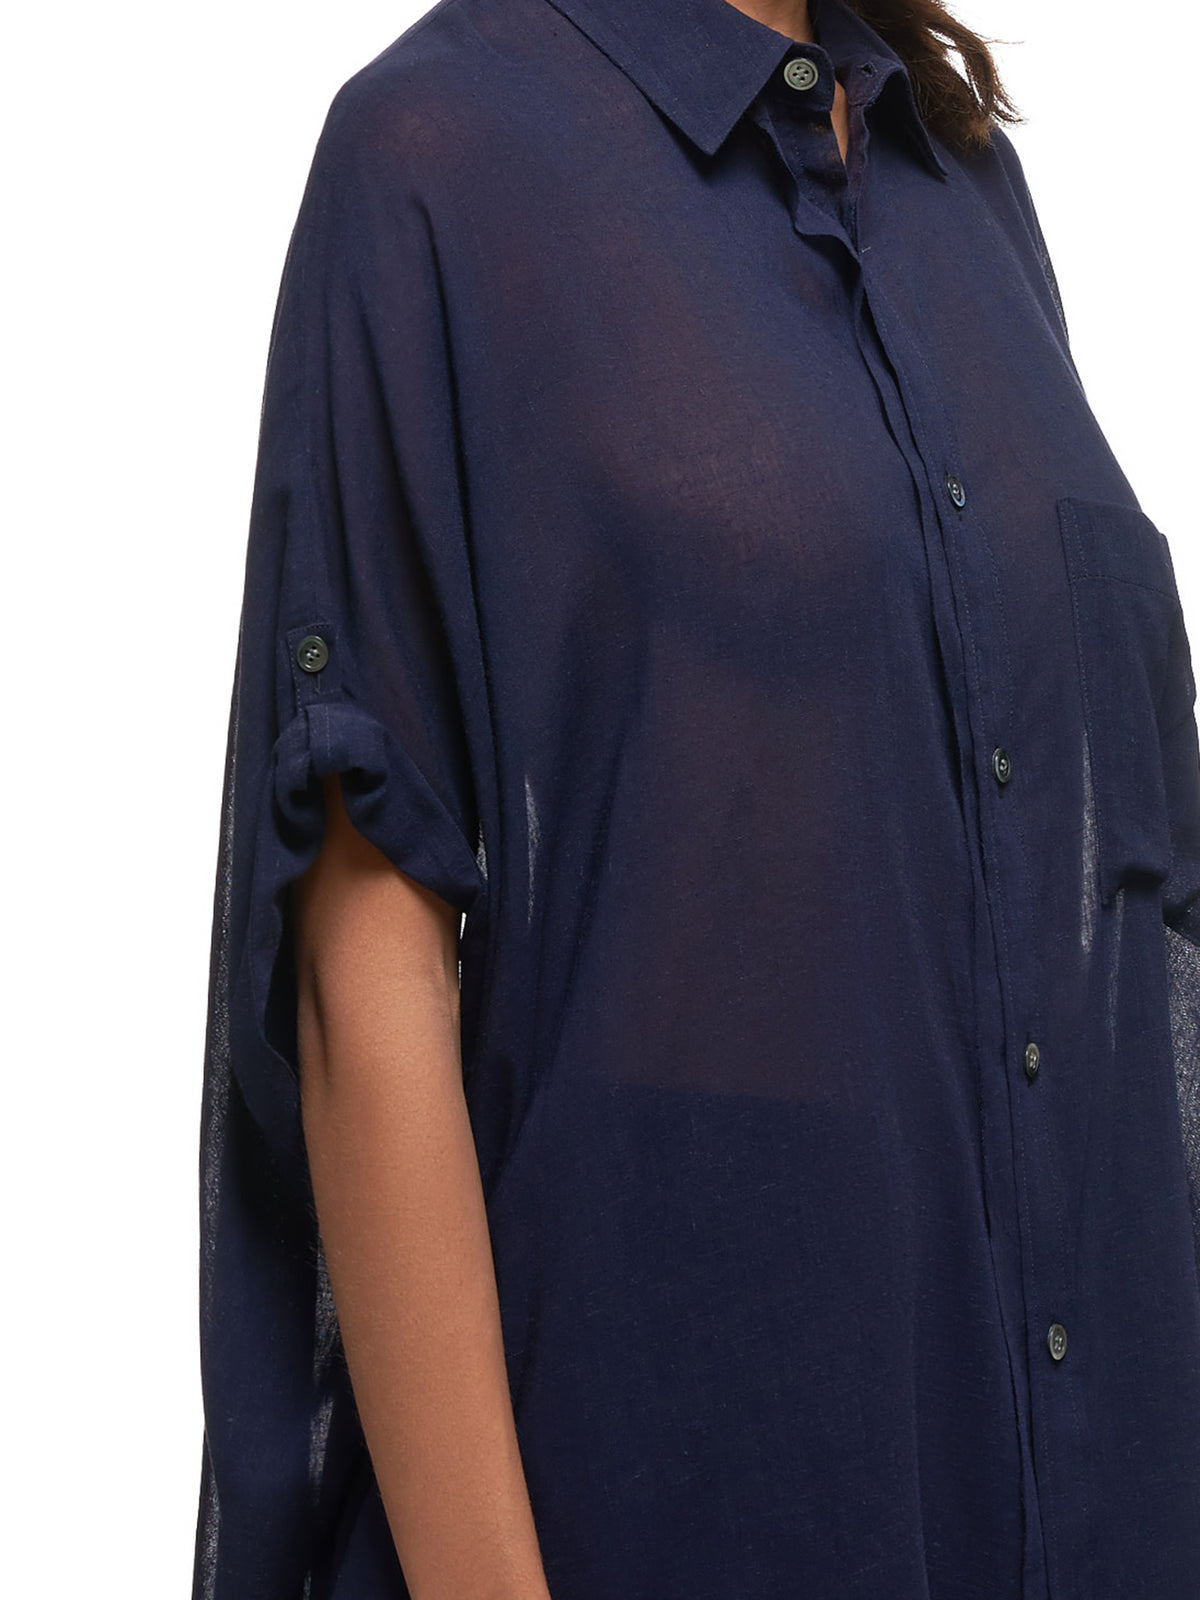 Oversized Shirt (YS-B07-229-NAVY)